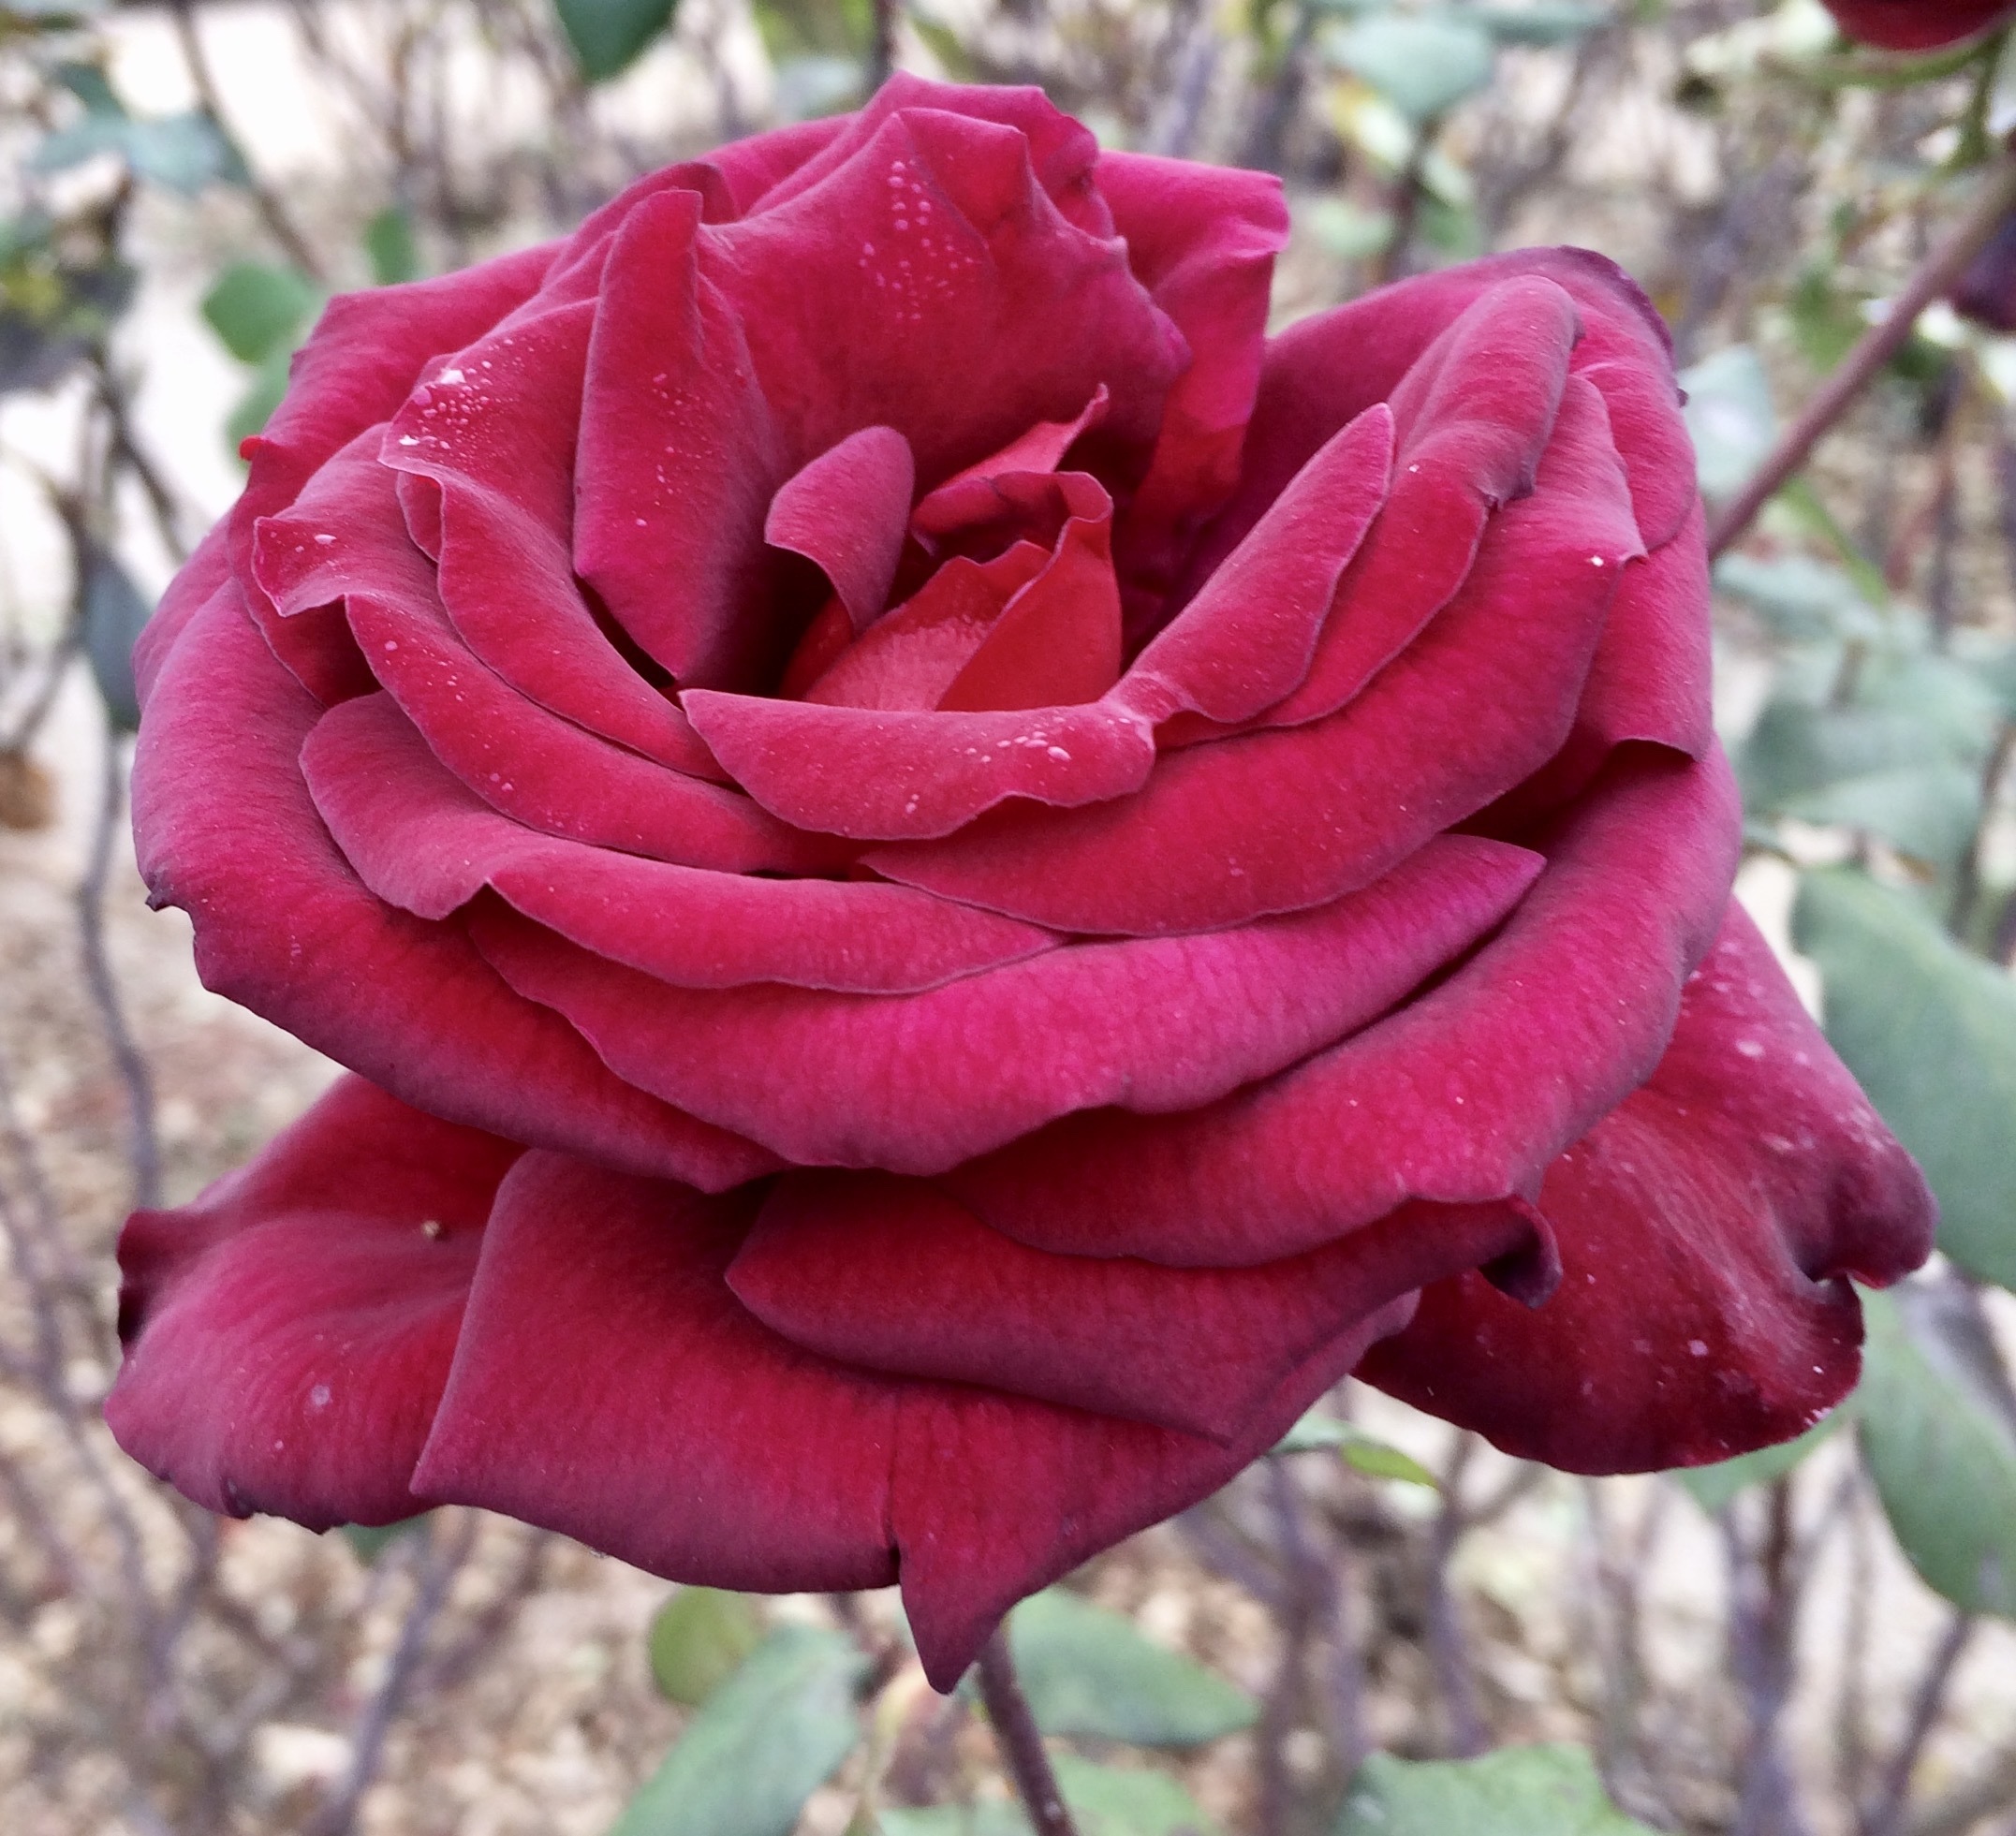 A deep-red rose - one of my favourite rose colours